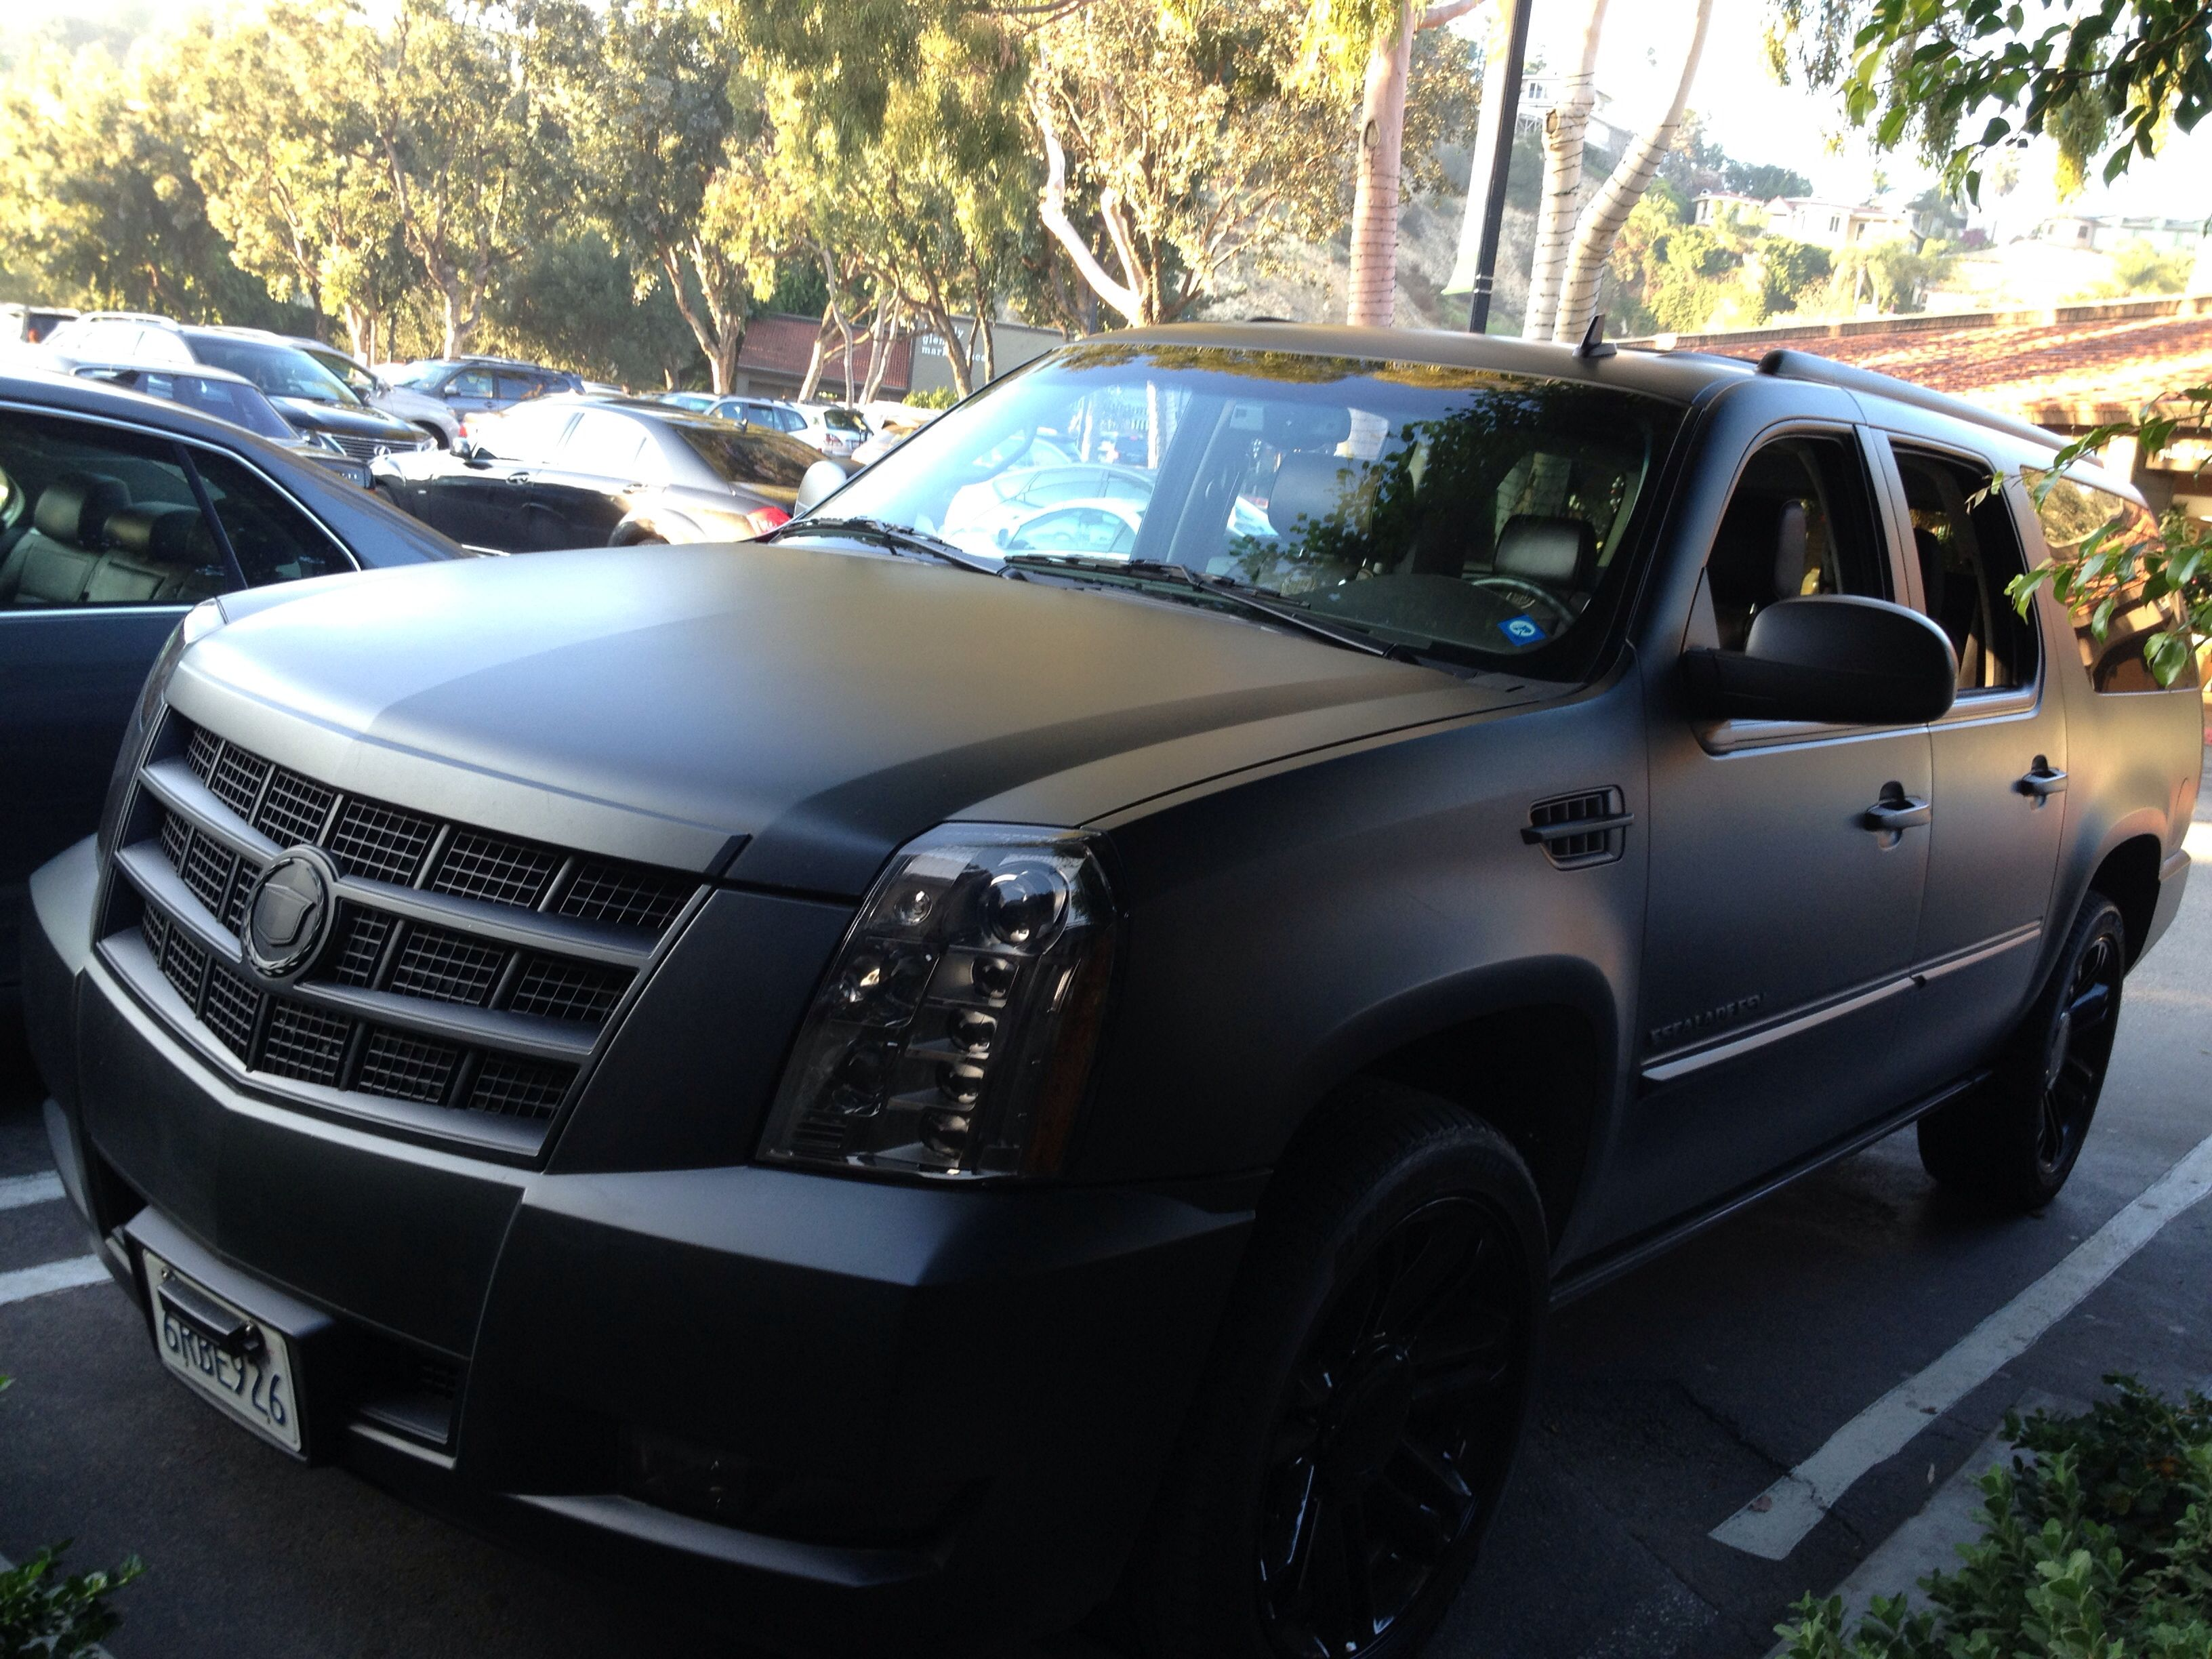 black out cadillac escalade  [ 3264 x 2448 Pixel ]